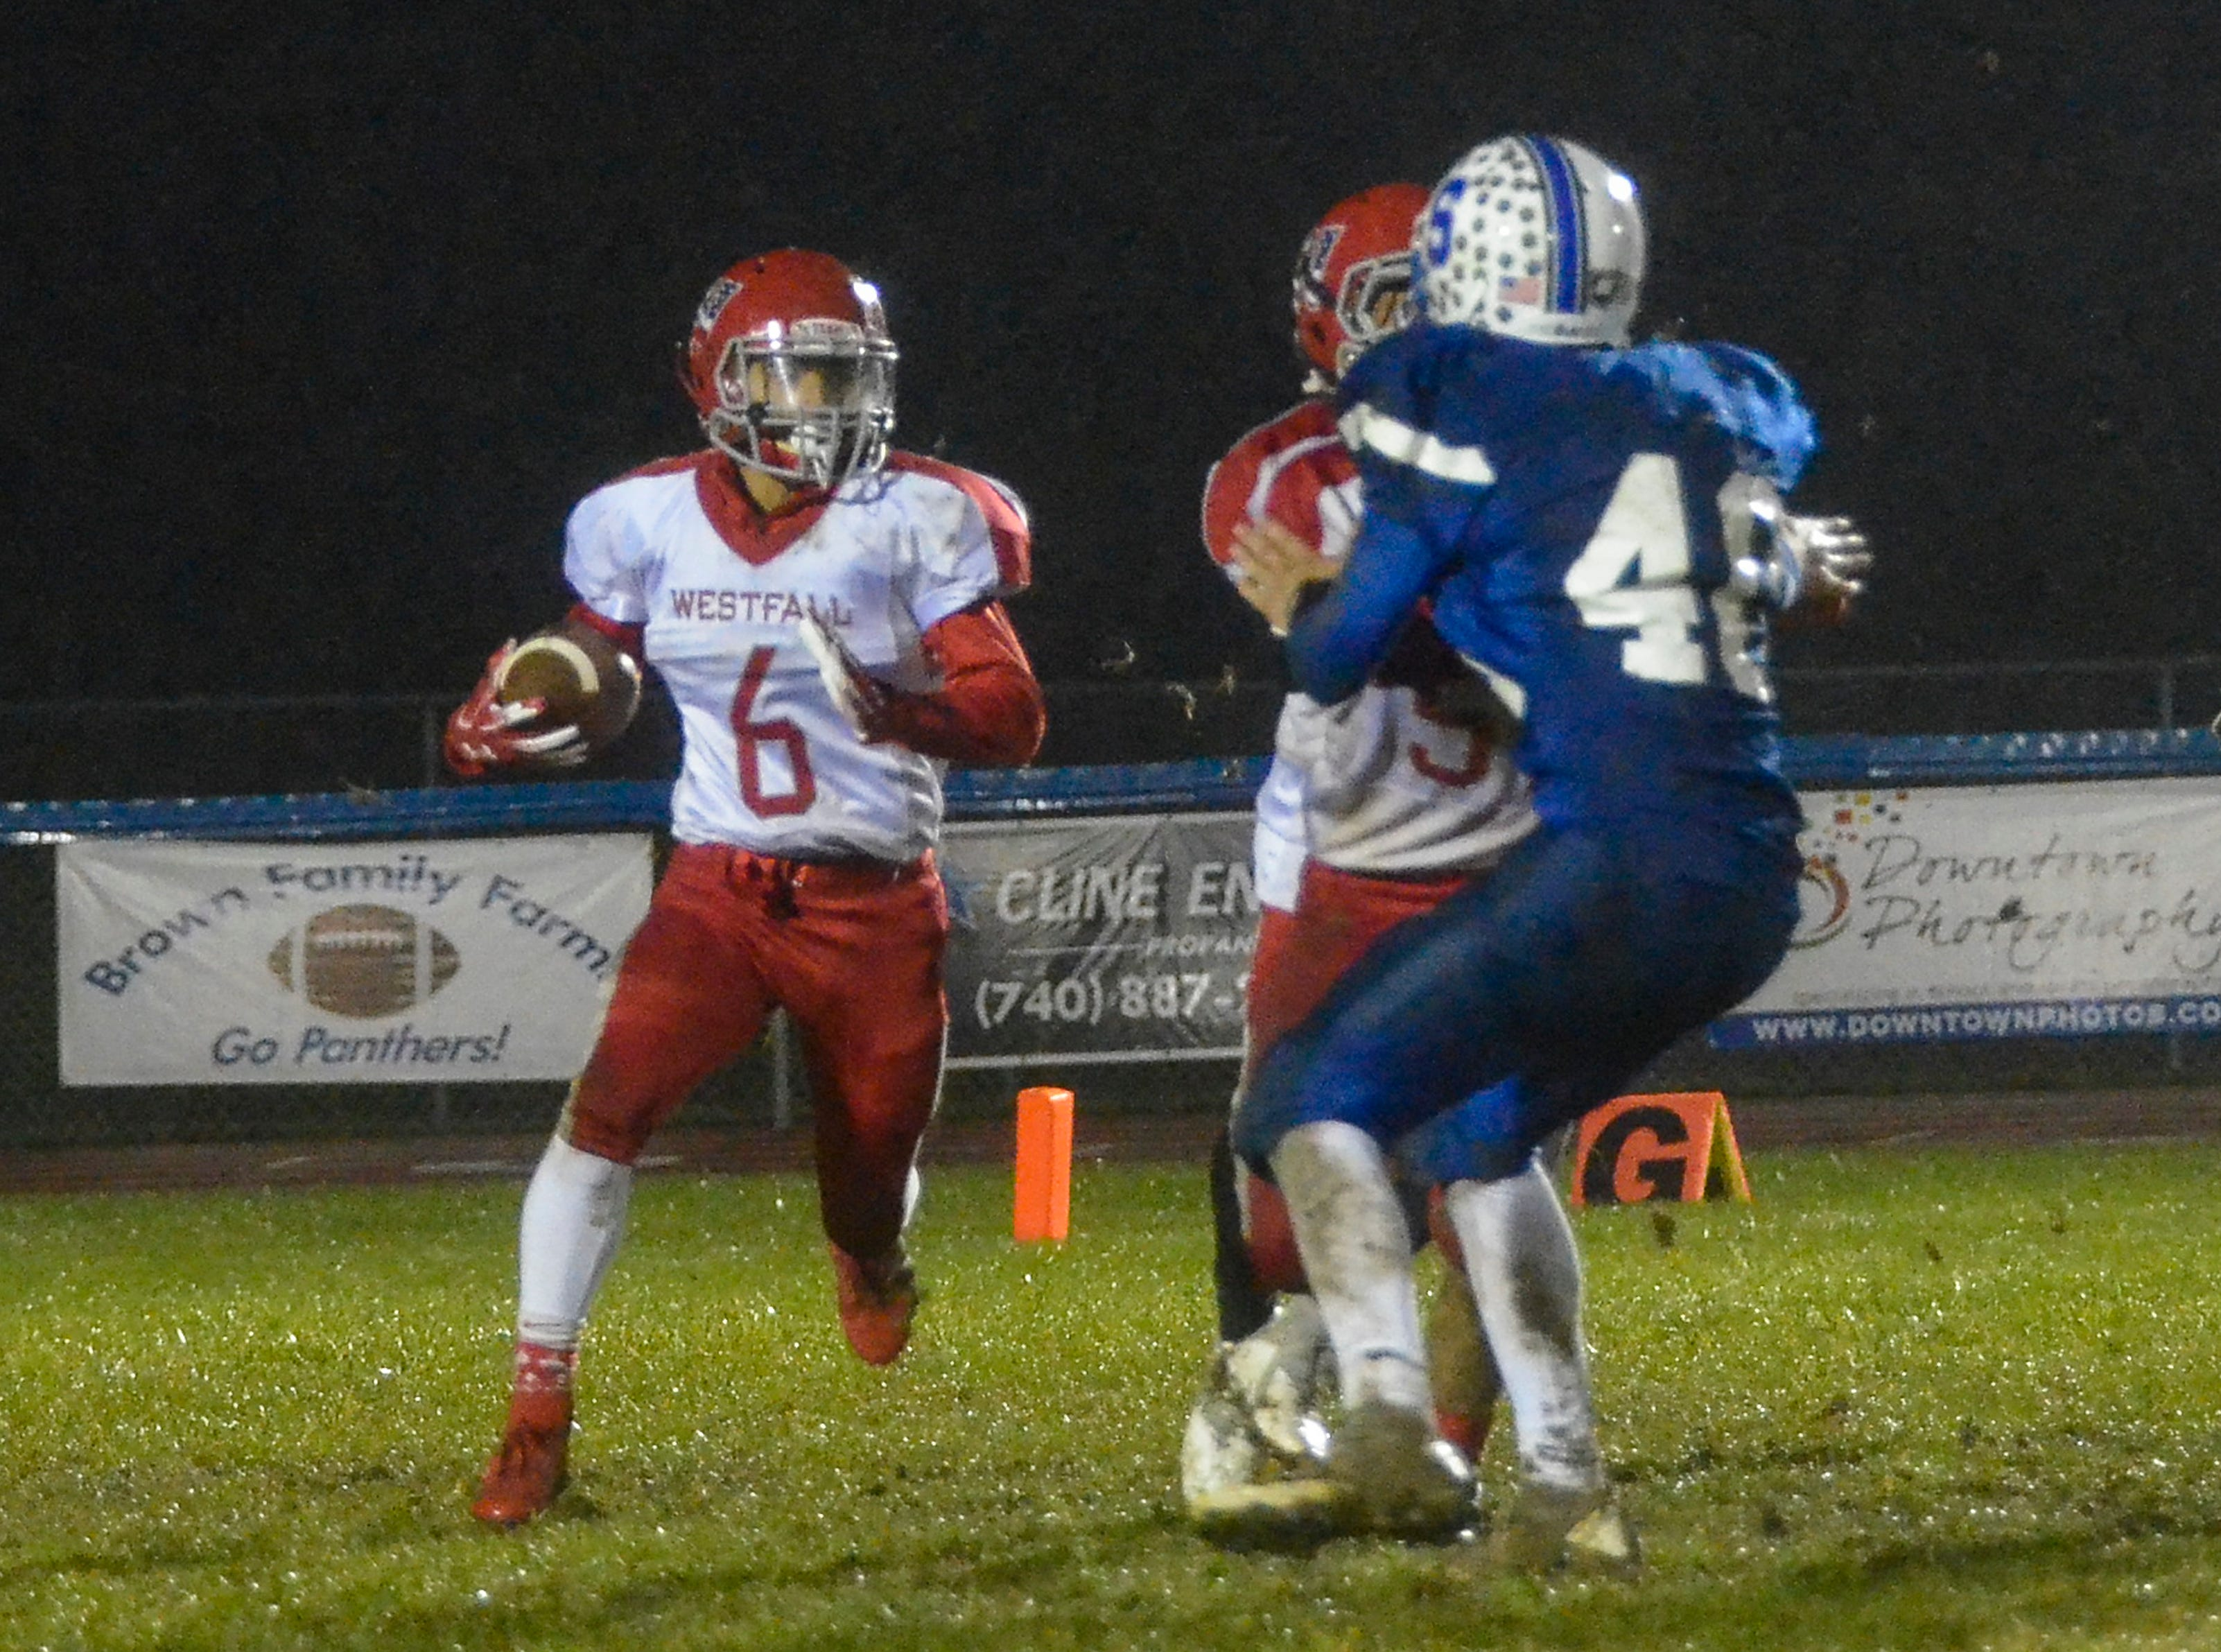 Southeastern defeated Westfall Friday night at Southeastern High School 40-0.